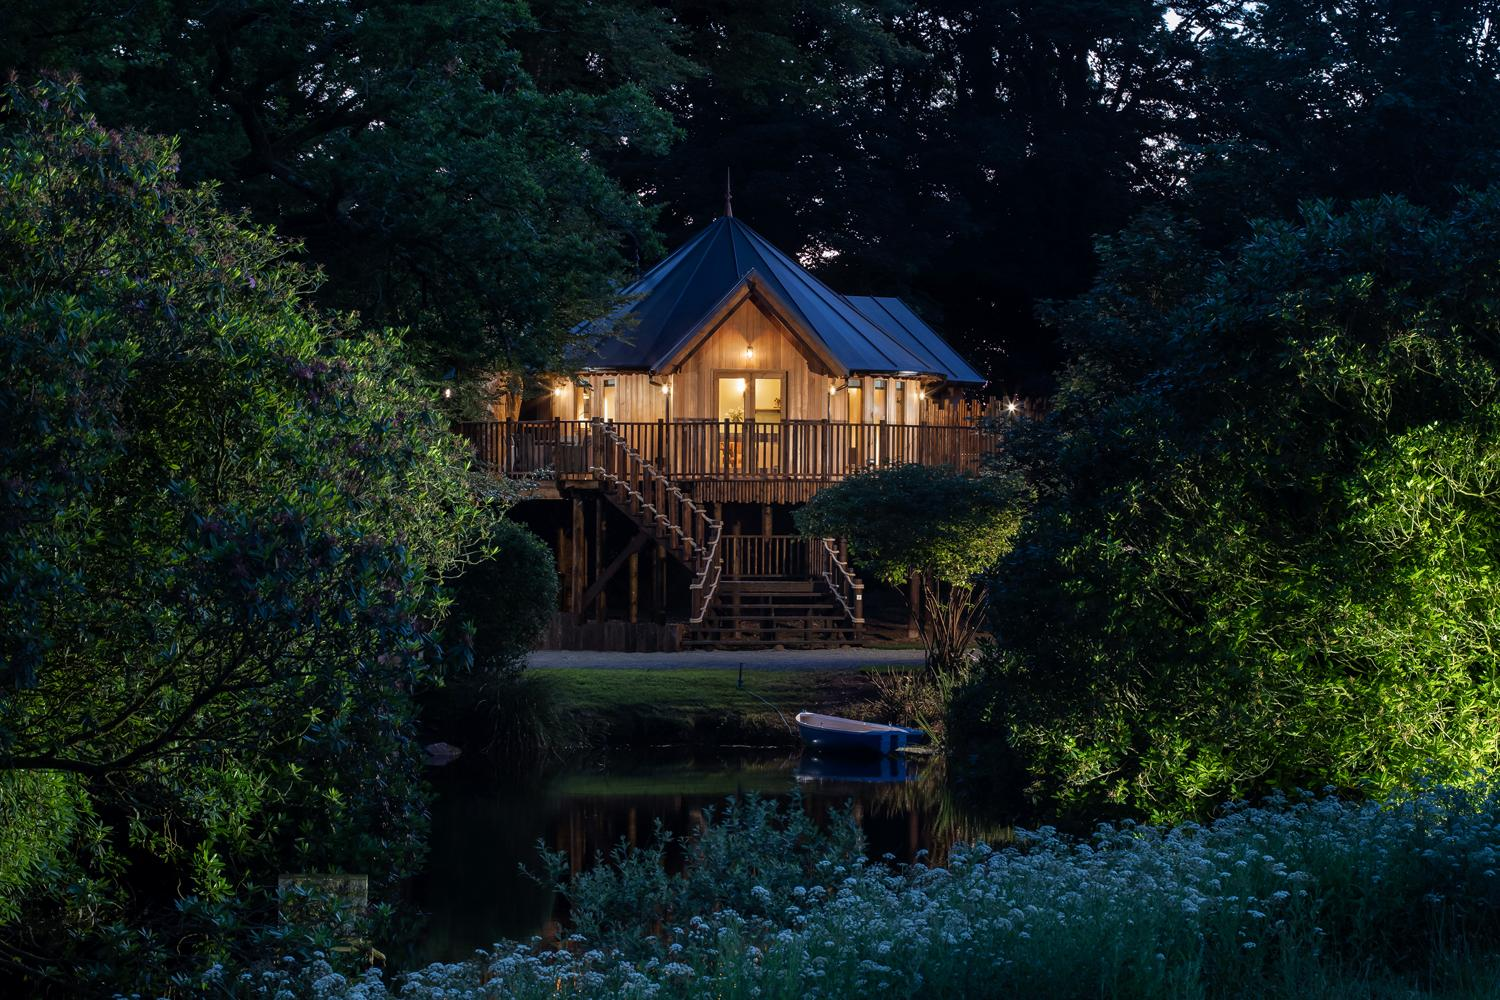 The Treehouses are part of Luxury Lodge's collaboration with David Lloyd